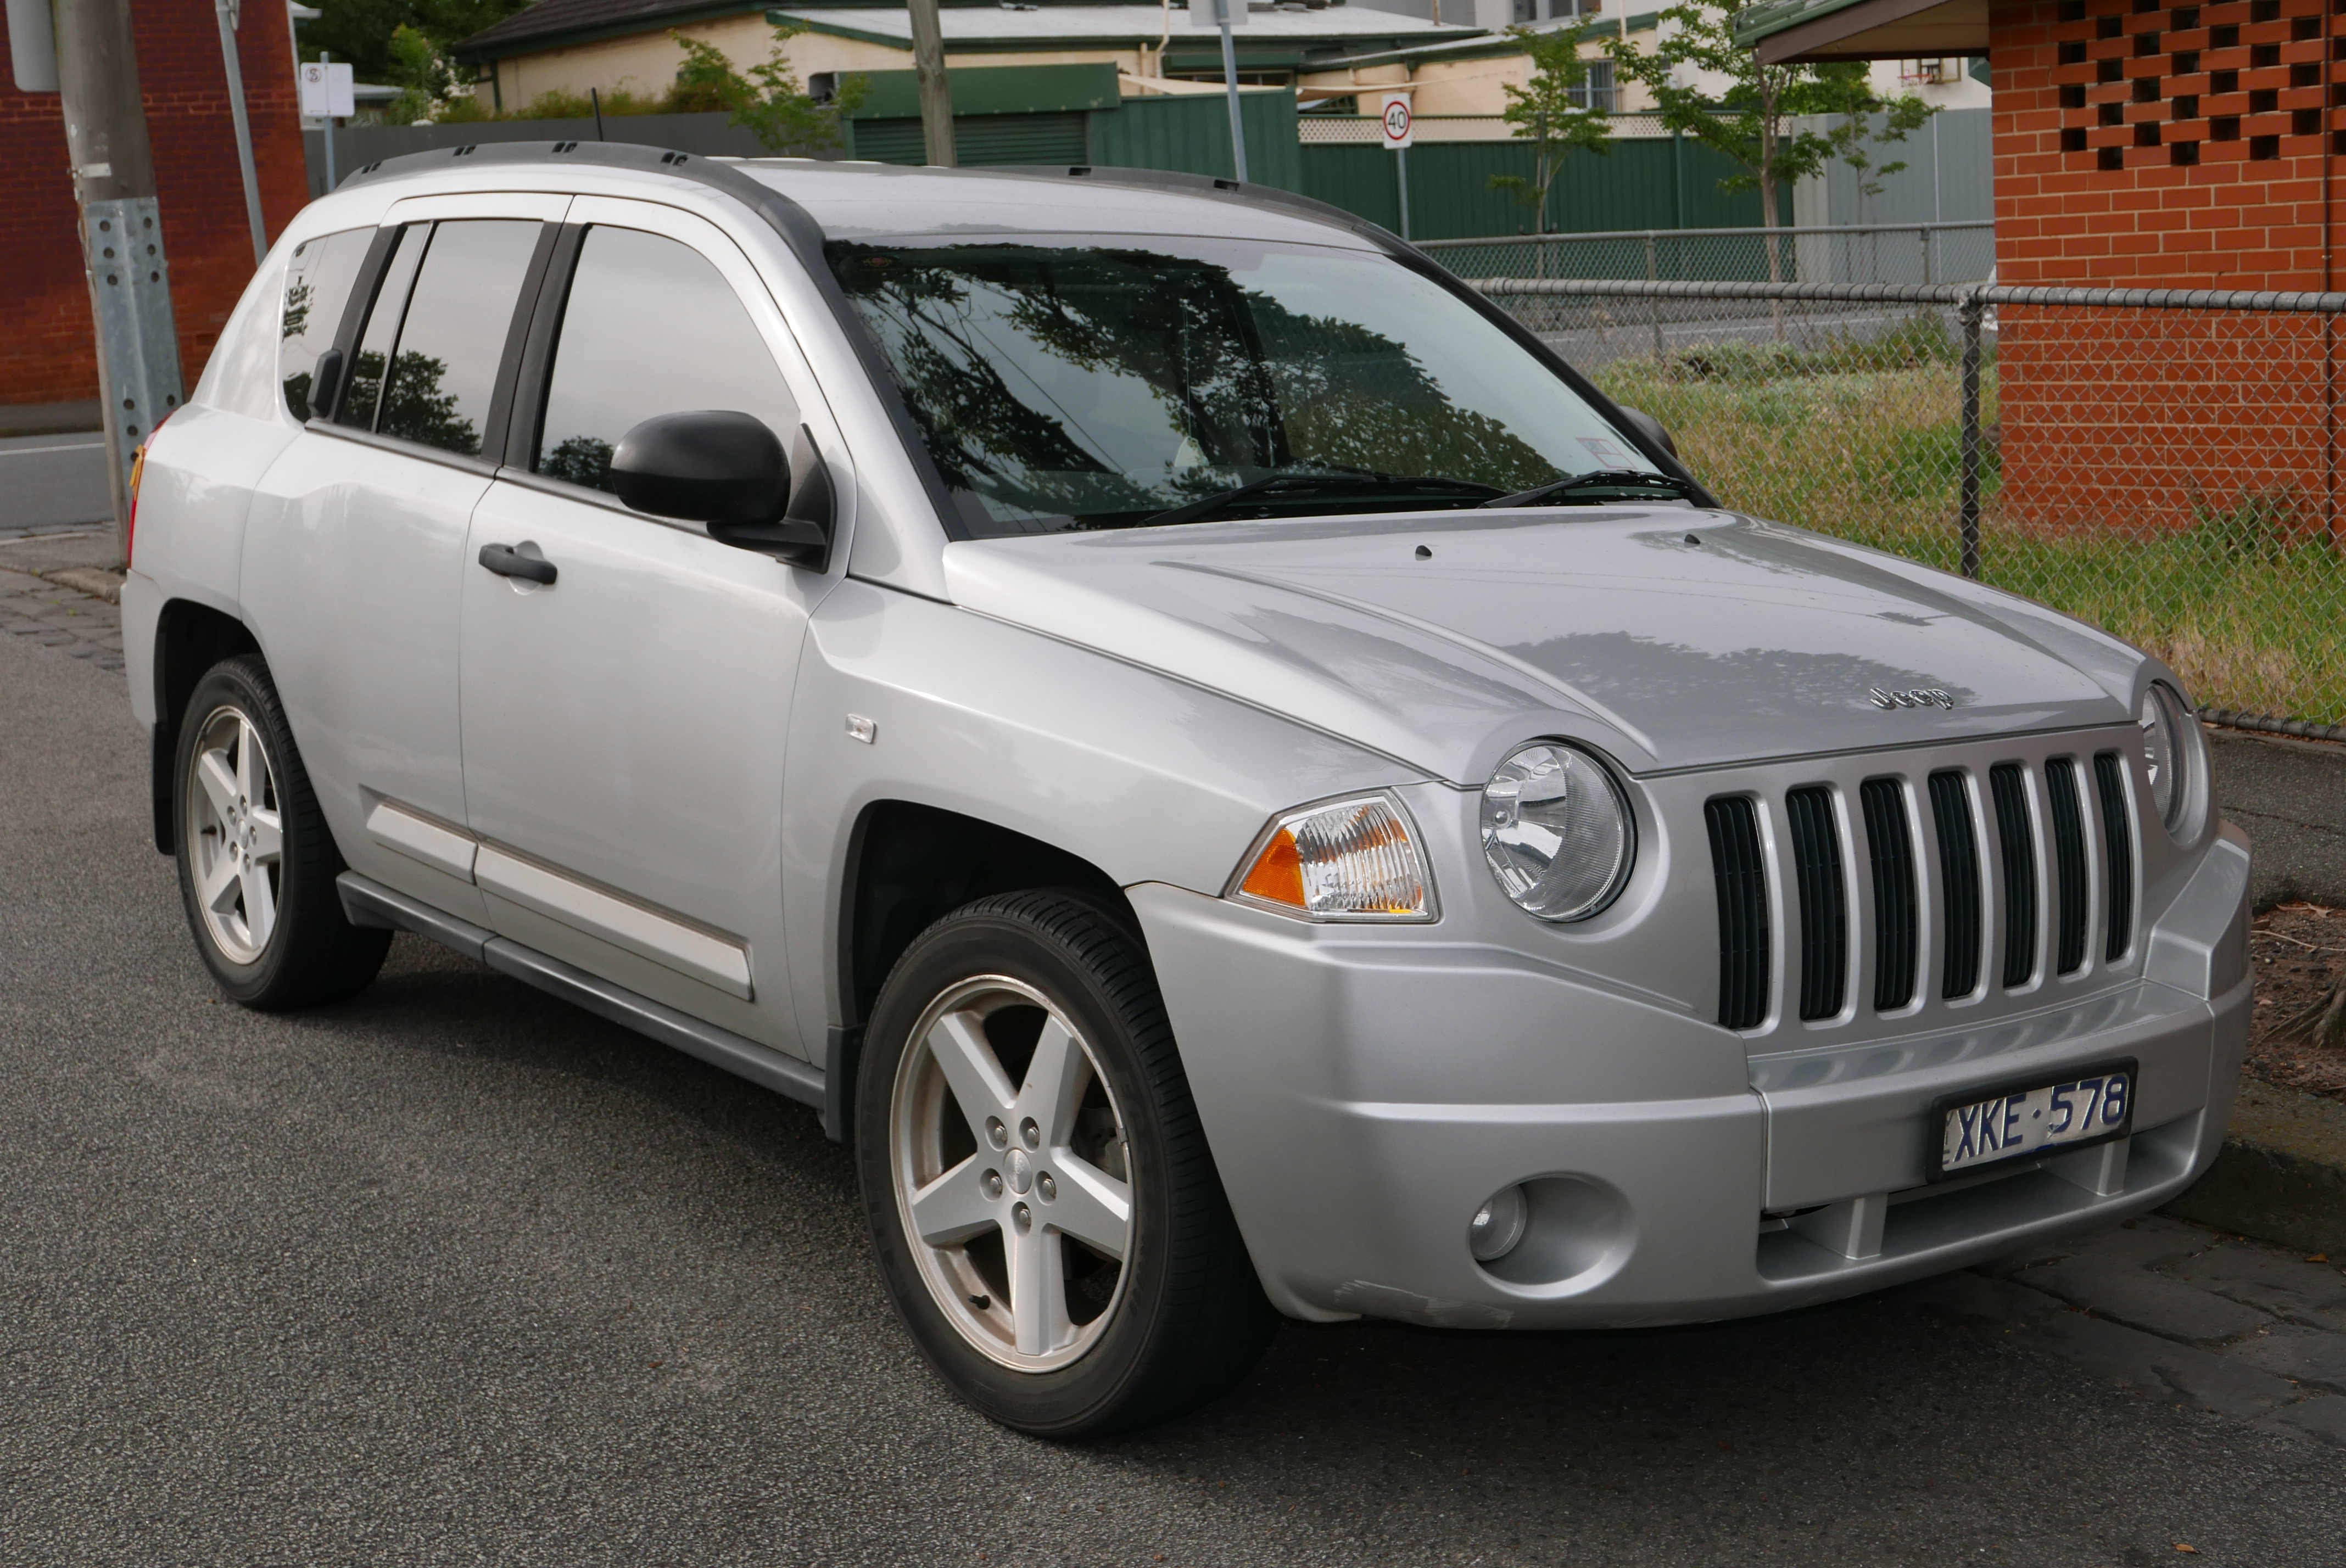 file 2008 jeep compass mk my08 limited 2 4 wagon 2015 11 11 wikimedia commons. Black Bedroom Furniture Sets. Home Design Ideas